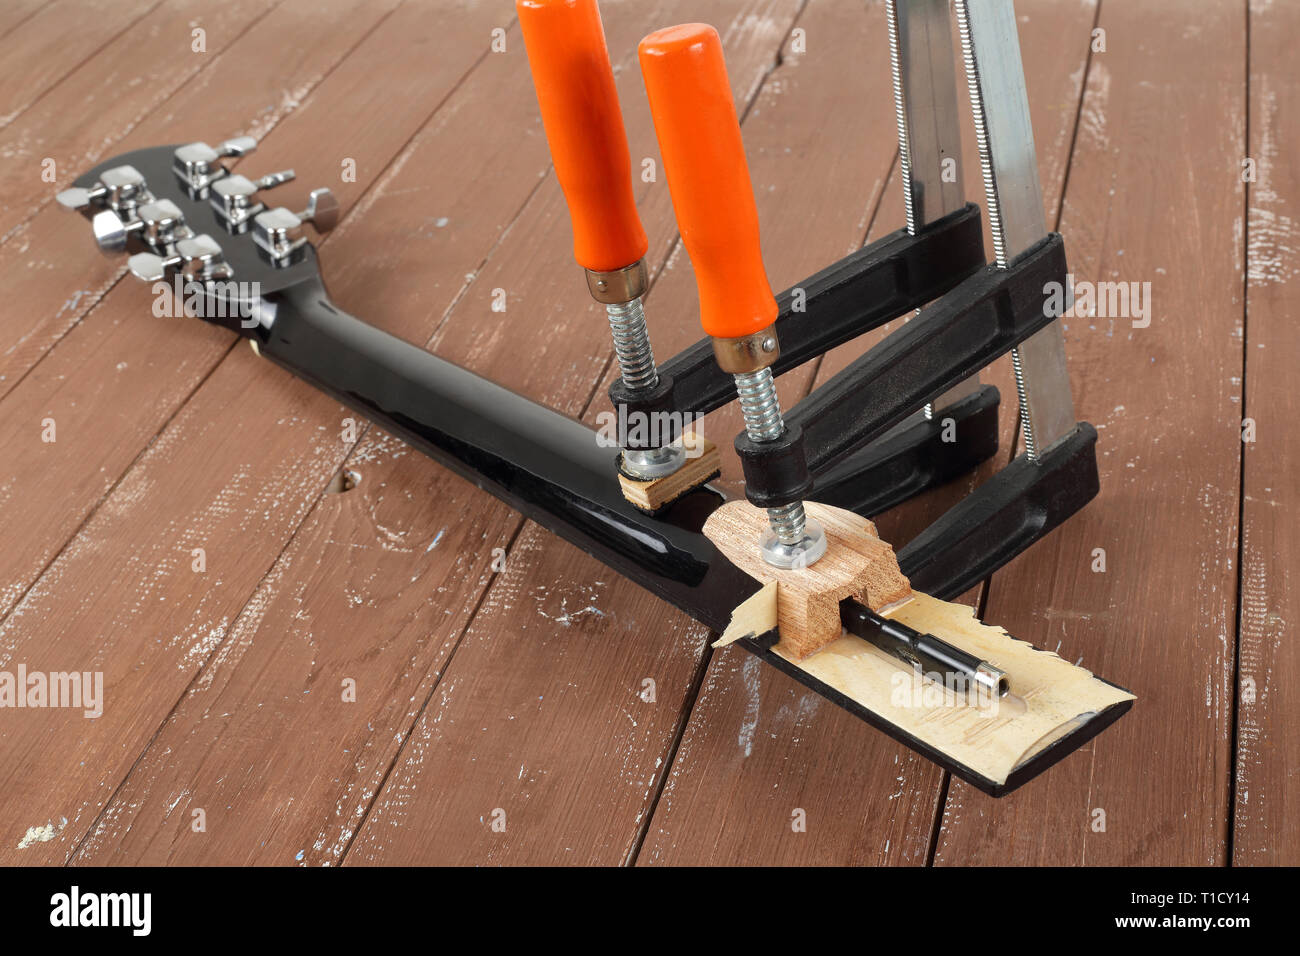 Guitar repair and service - Clamping a guitar neck wooden background - Stock Image